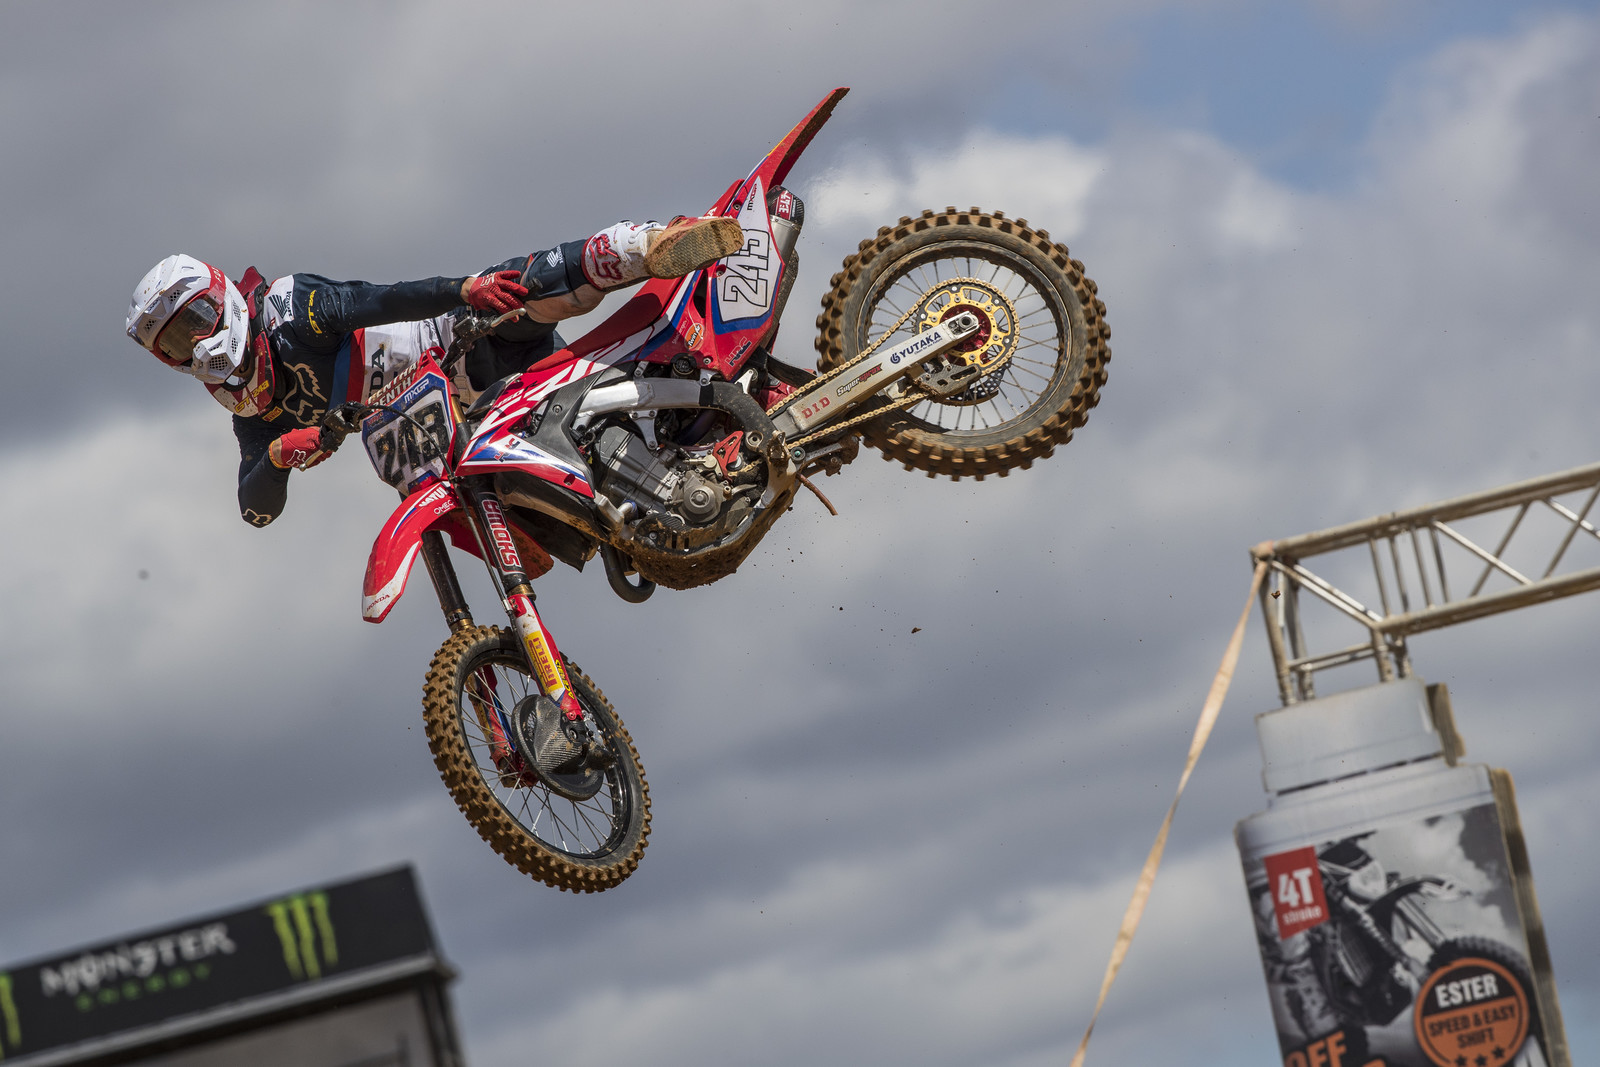 Finally, Honda HRC rider Tim Gajser had a mistake free weekend to go 1 - 1 for the top step of the podium. But that doesn't mean that Cairoli made it easy.